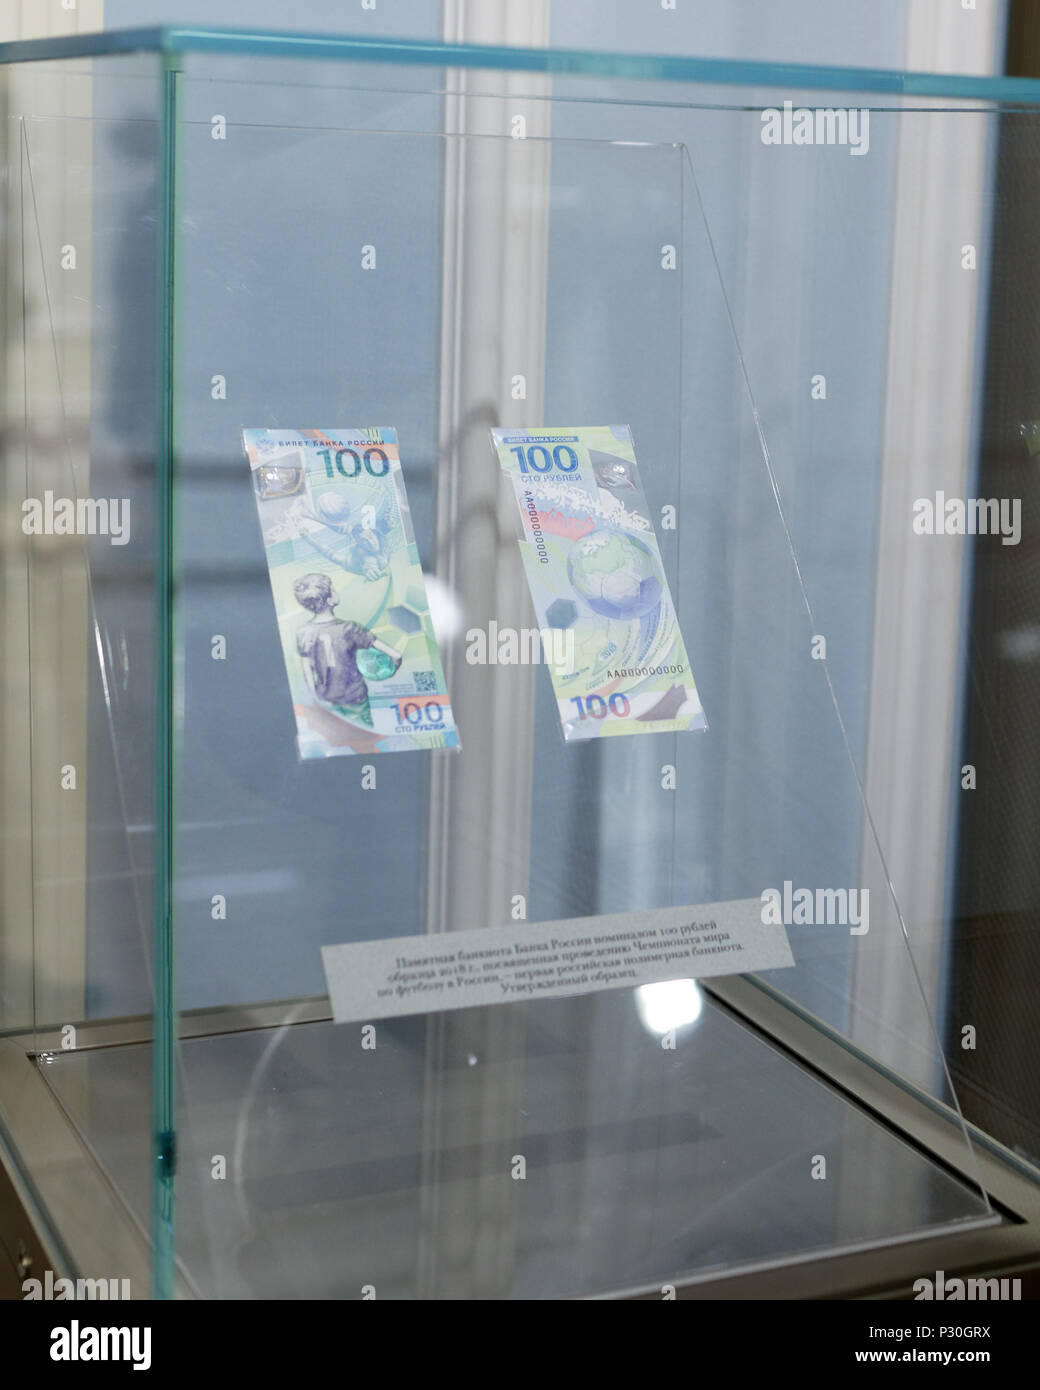 St. Petersburg, Russia - May 23, 2018: Commemorative 100 rubles banknotes for FIFA World Cup Russia 2018 exposed in the exhibition '1818+. Two hundred - Stock Image